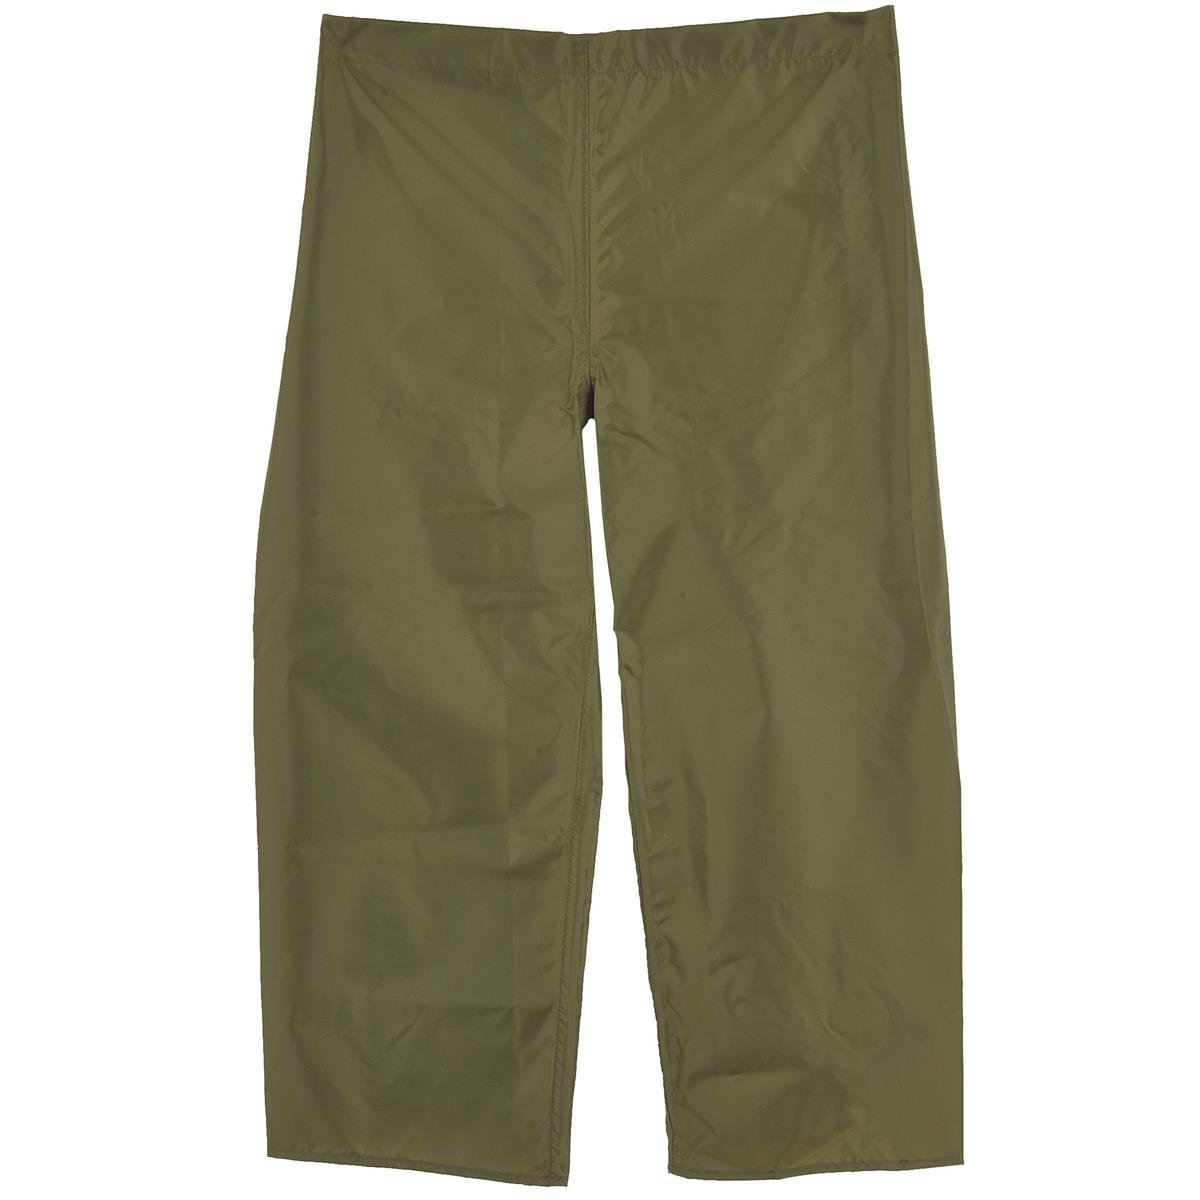 GEMPLER'S Full Front Lower Body Protective Spraying Safety Chaps, Olive Green, Lightweight, Chemical Resistant, One Size Fits Most - Protects from Class III and IV pesticides.